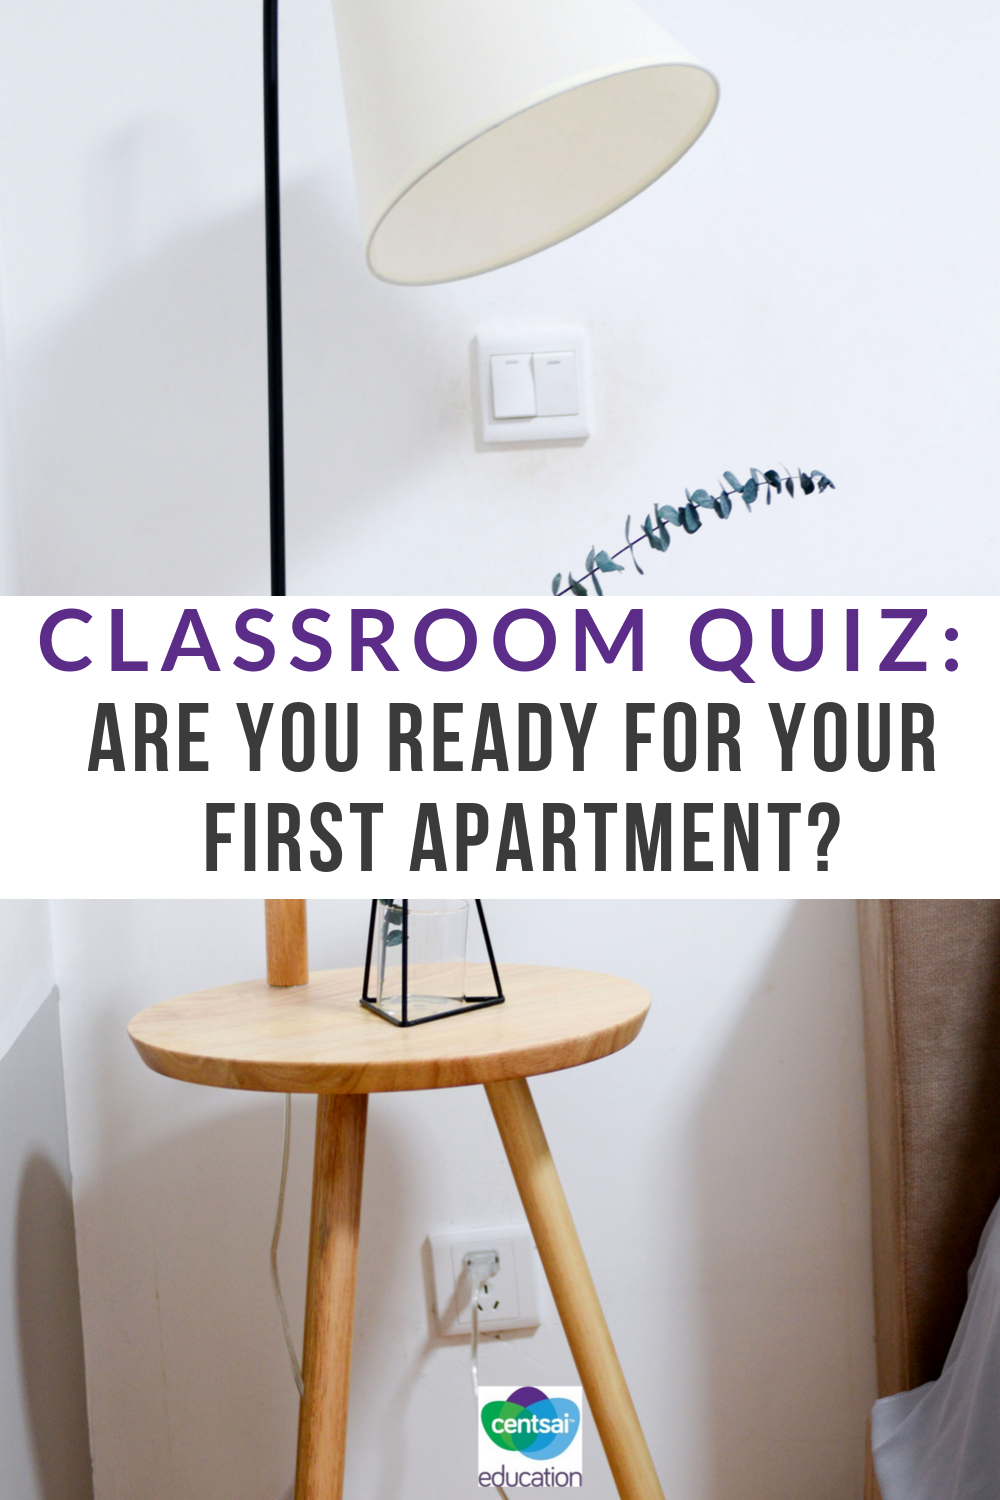 Are You Ready for Your First Apartment? - featured image